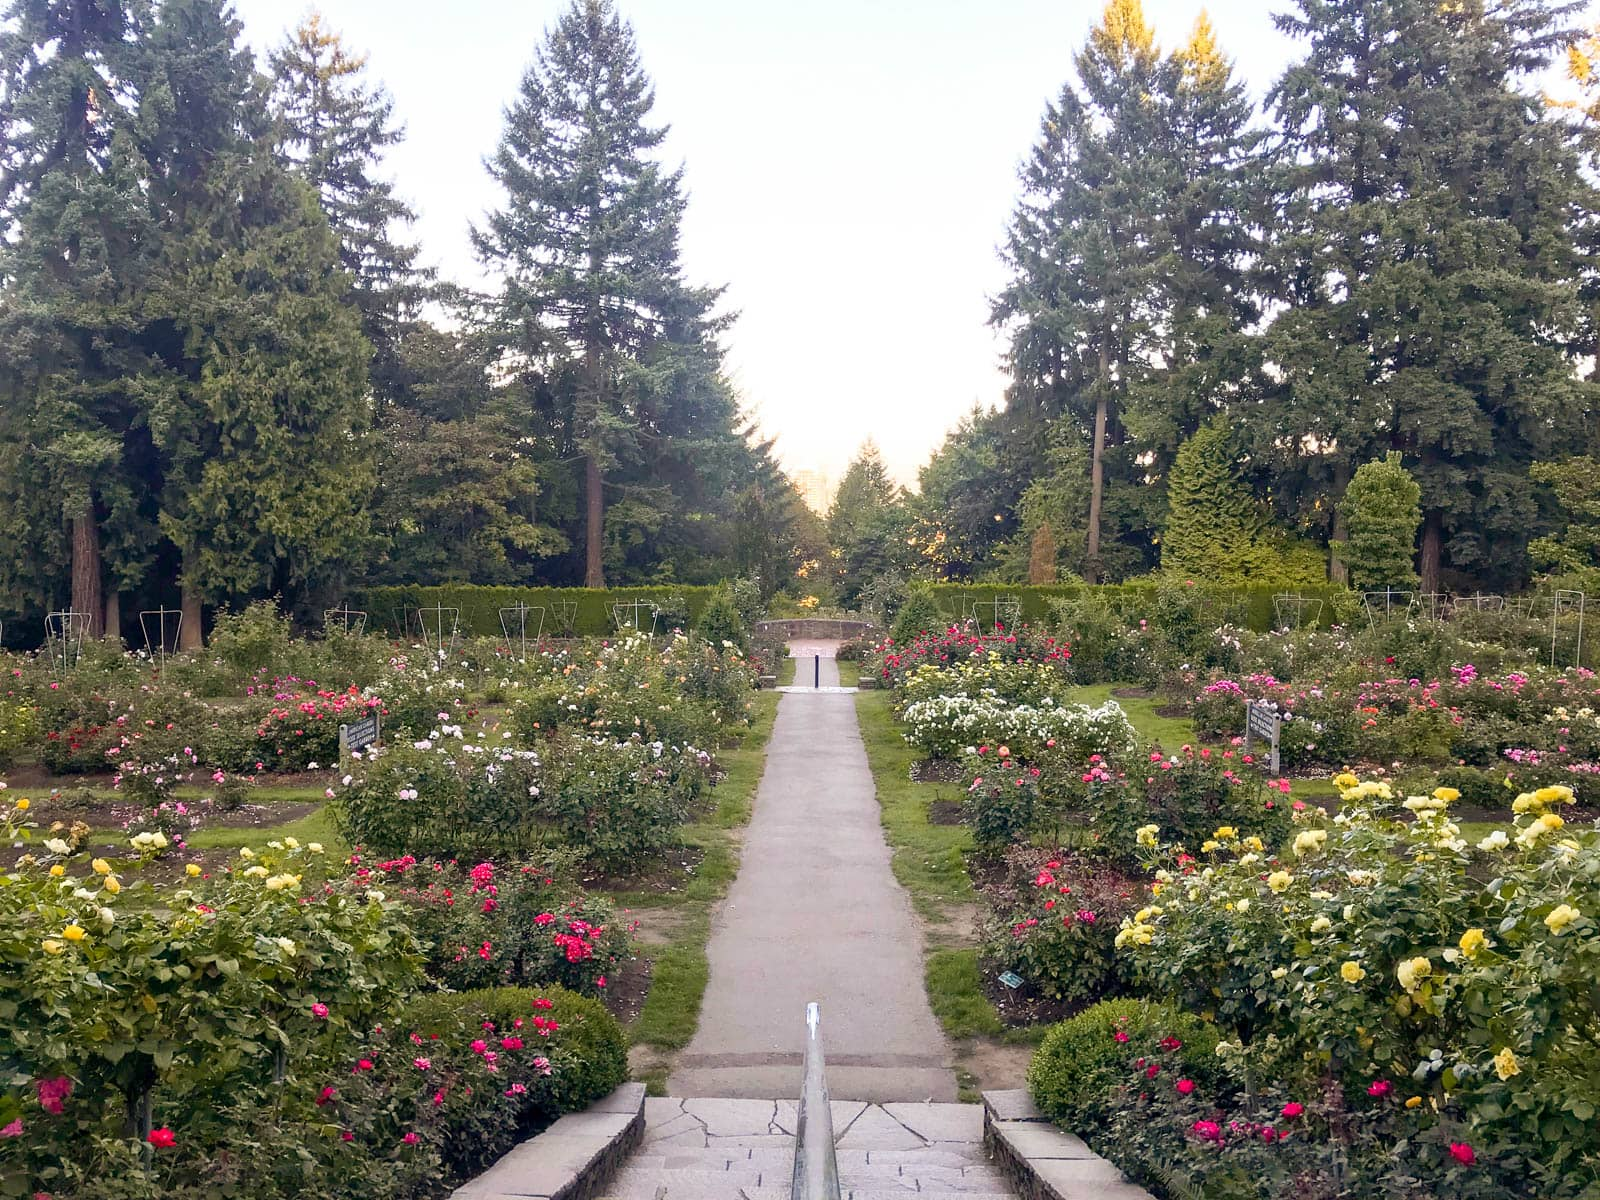 A concrete path going through arrangements of shrubs of roses.